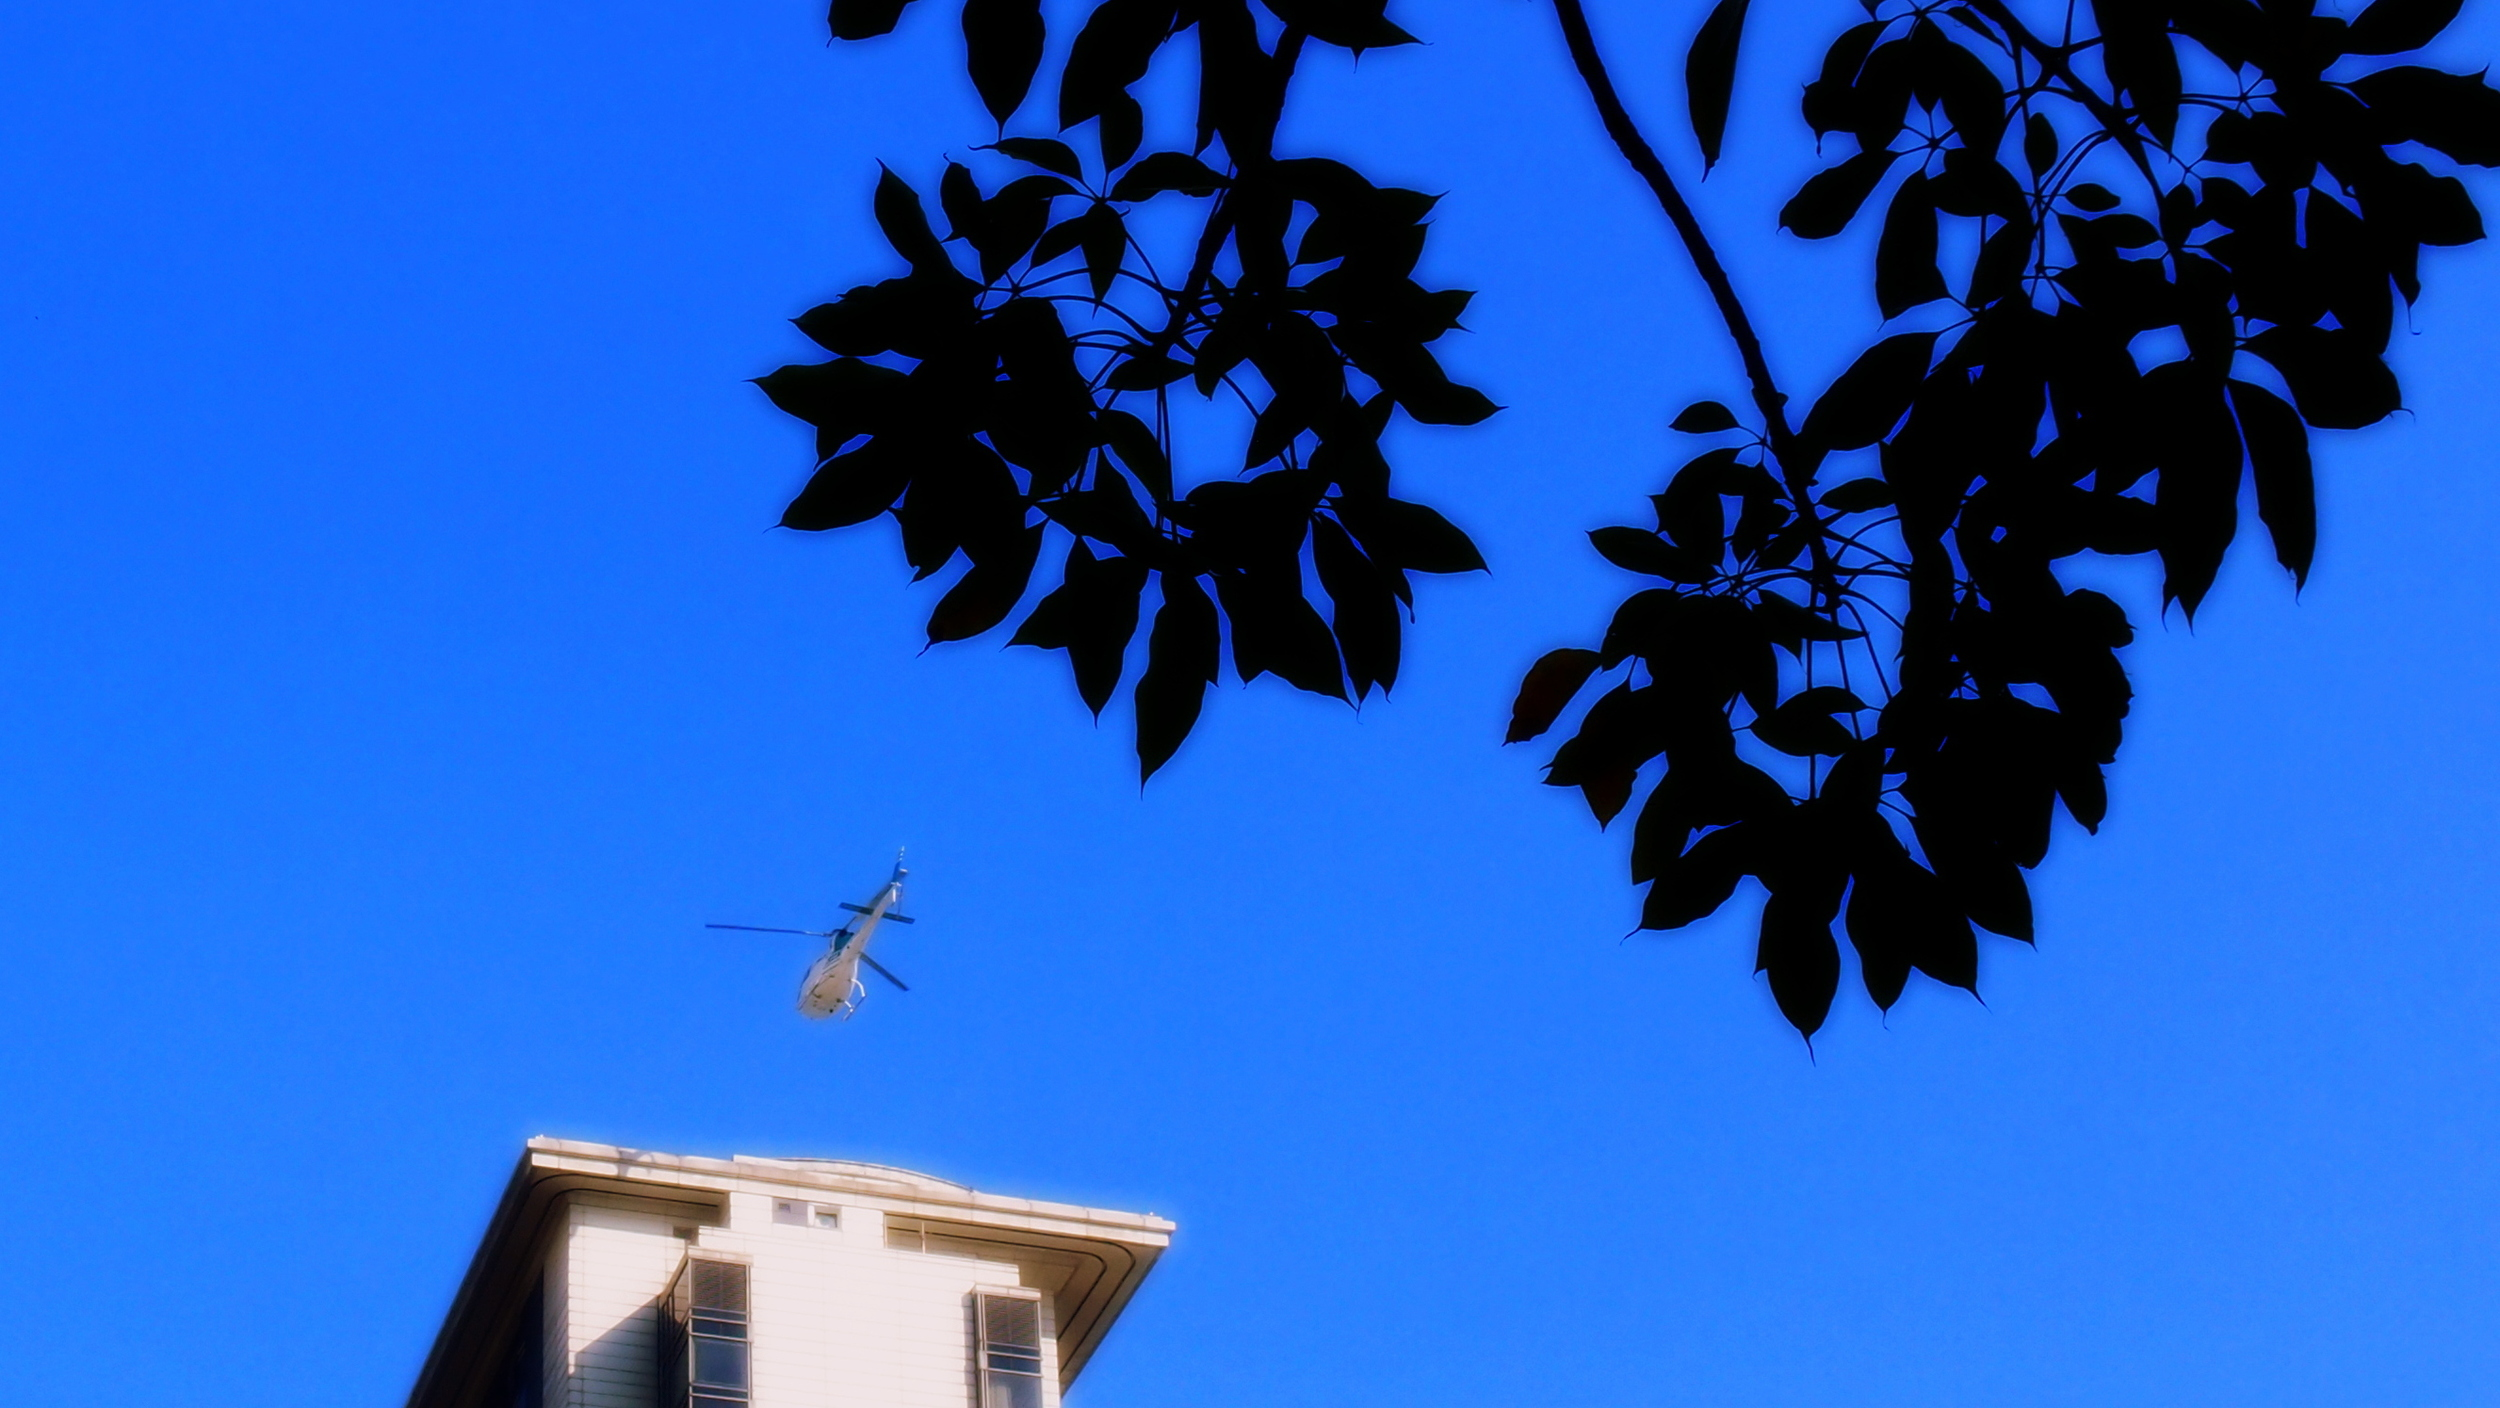 The Peninsula Hotel helicopter landing, as taken from the Hullett House Hotel